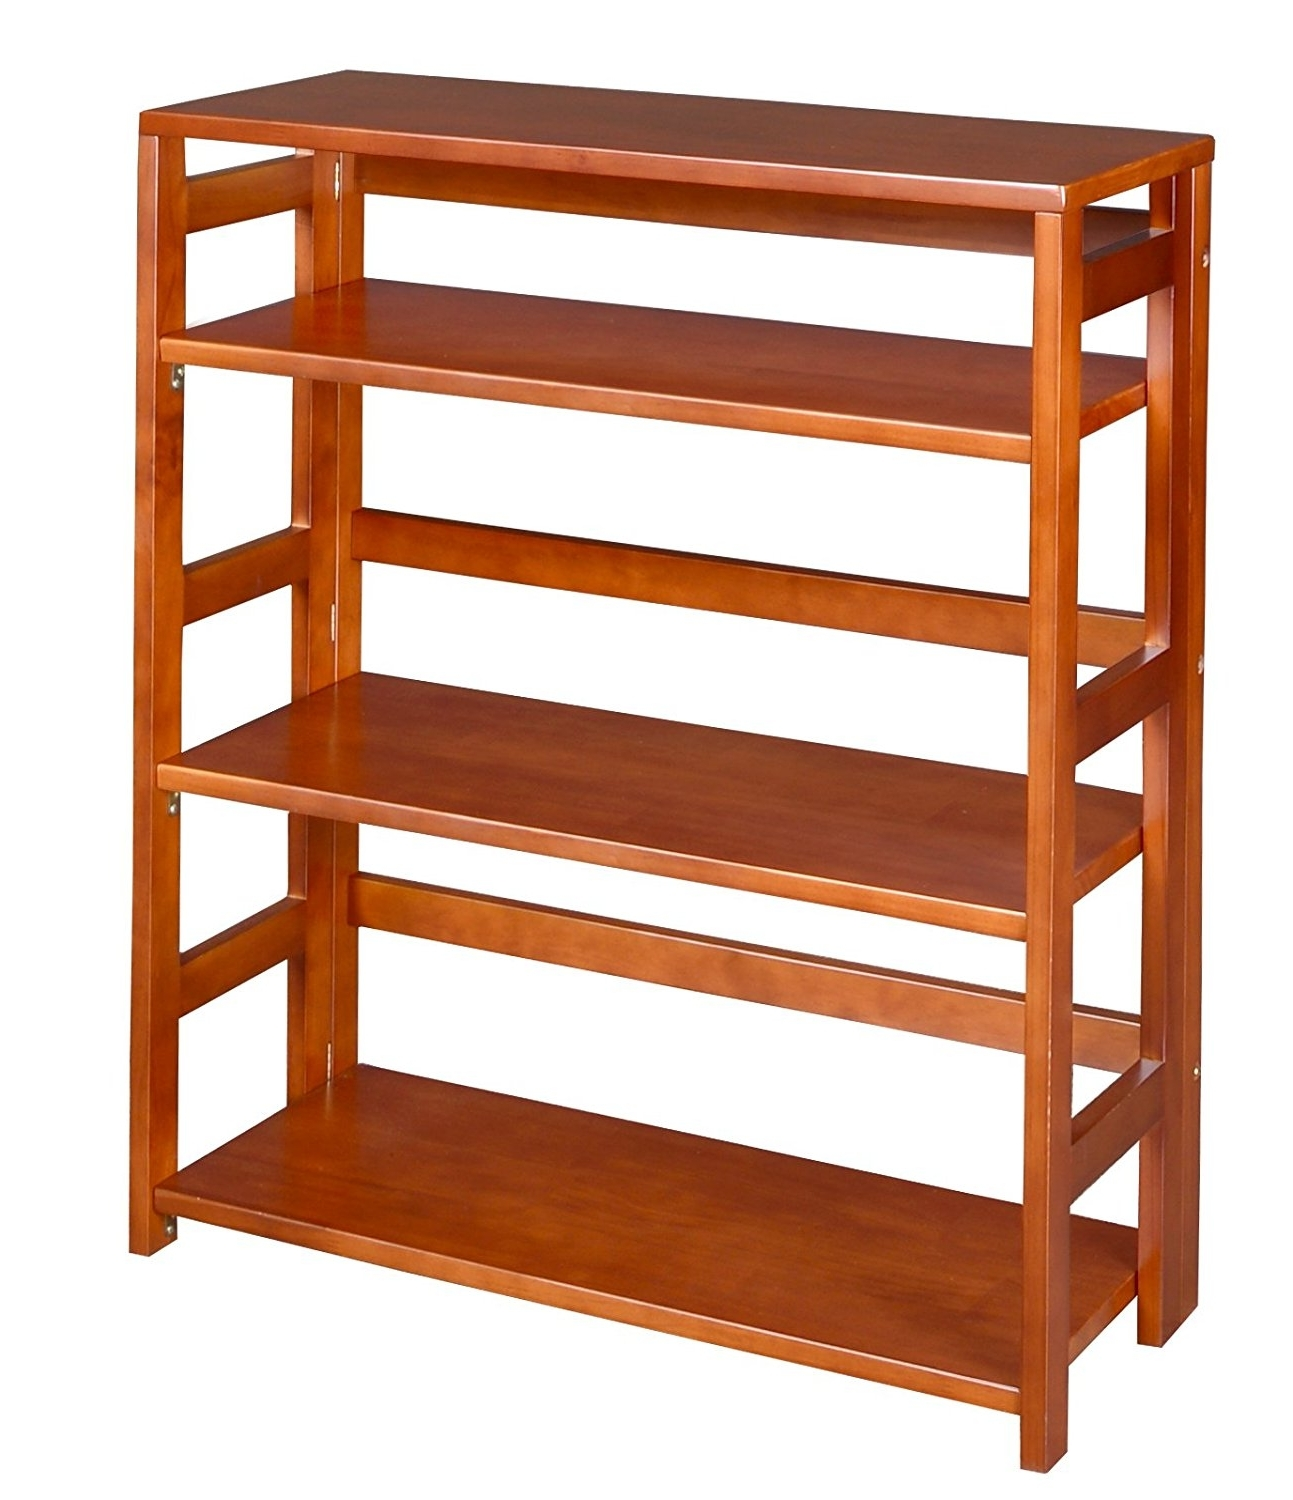 Most Recent Amazon: Regency Flip Flop 34 Inch High Folding Bookcase In 36 Inch Wide Bookcases (View 10 of 15)